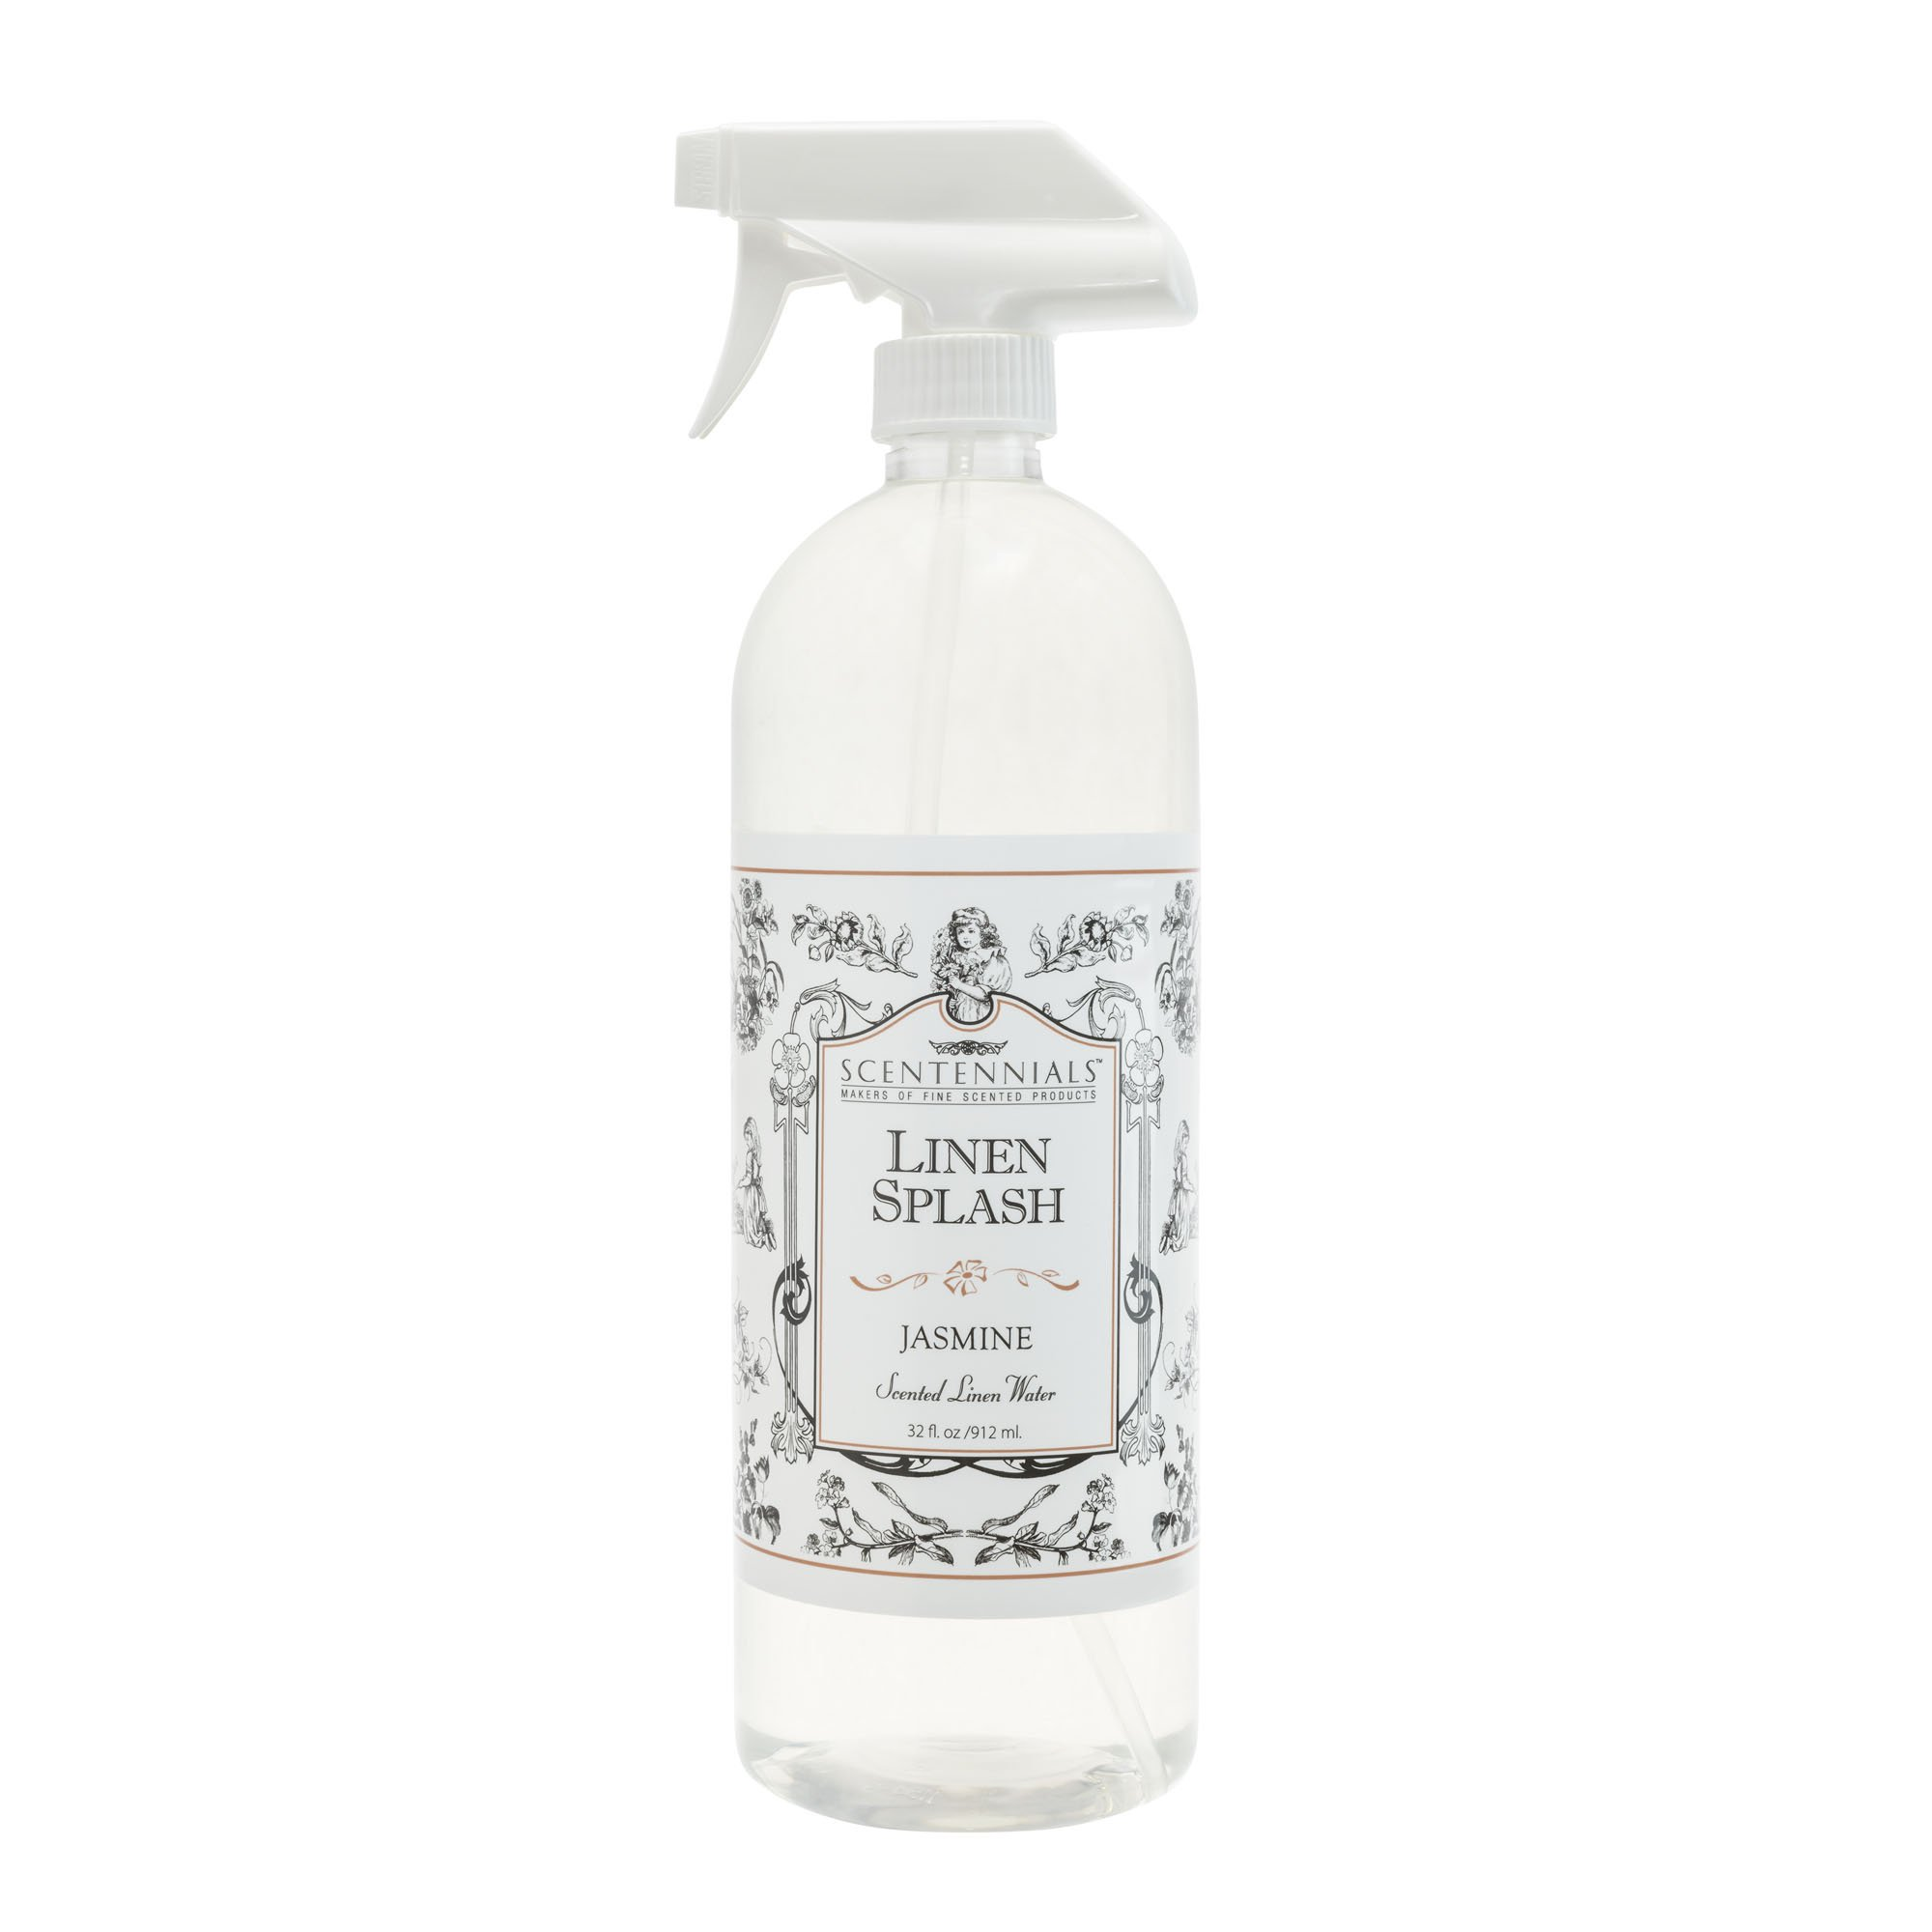 Scentennials Linen & Room Spray JASMINE 32oz - A MUST HAVE for all your linens, laundry basket or just spray around the house.